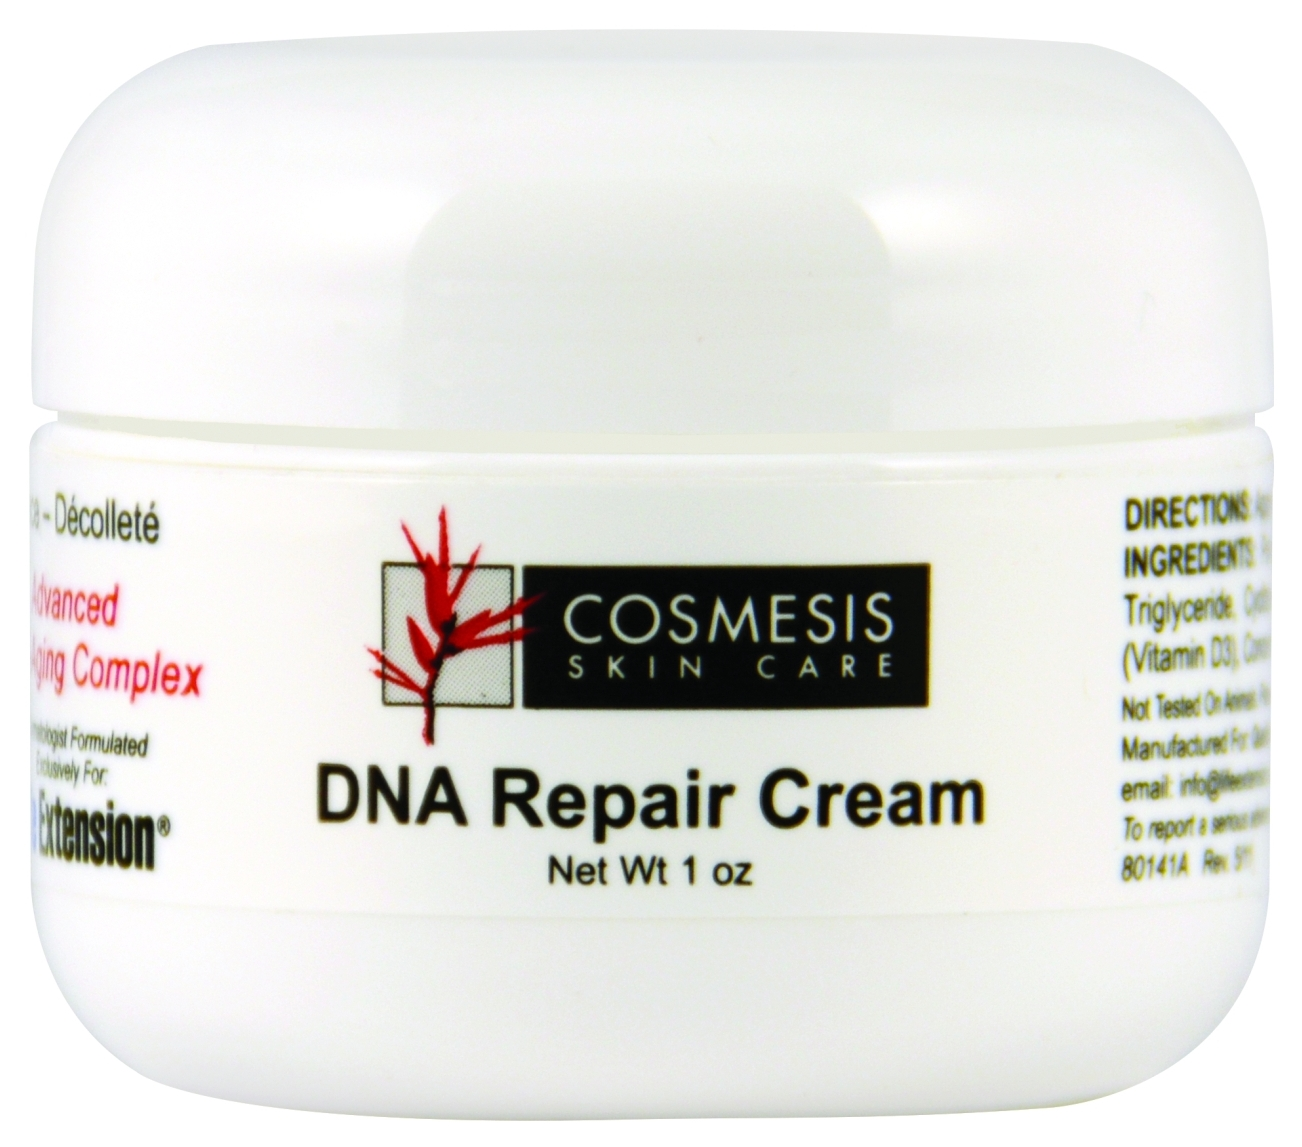 DNA Repair Cream 1 oz by Life Extension